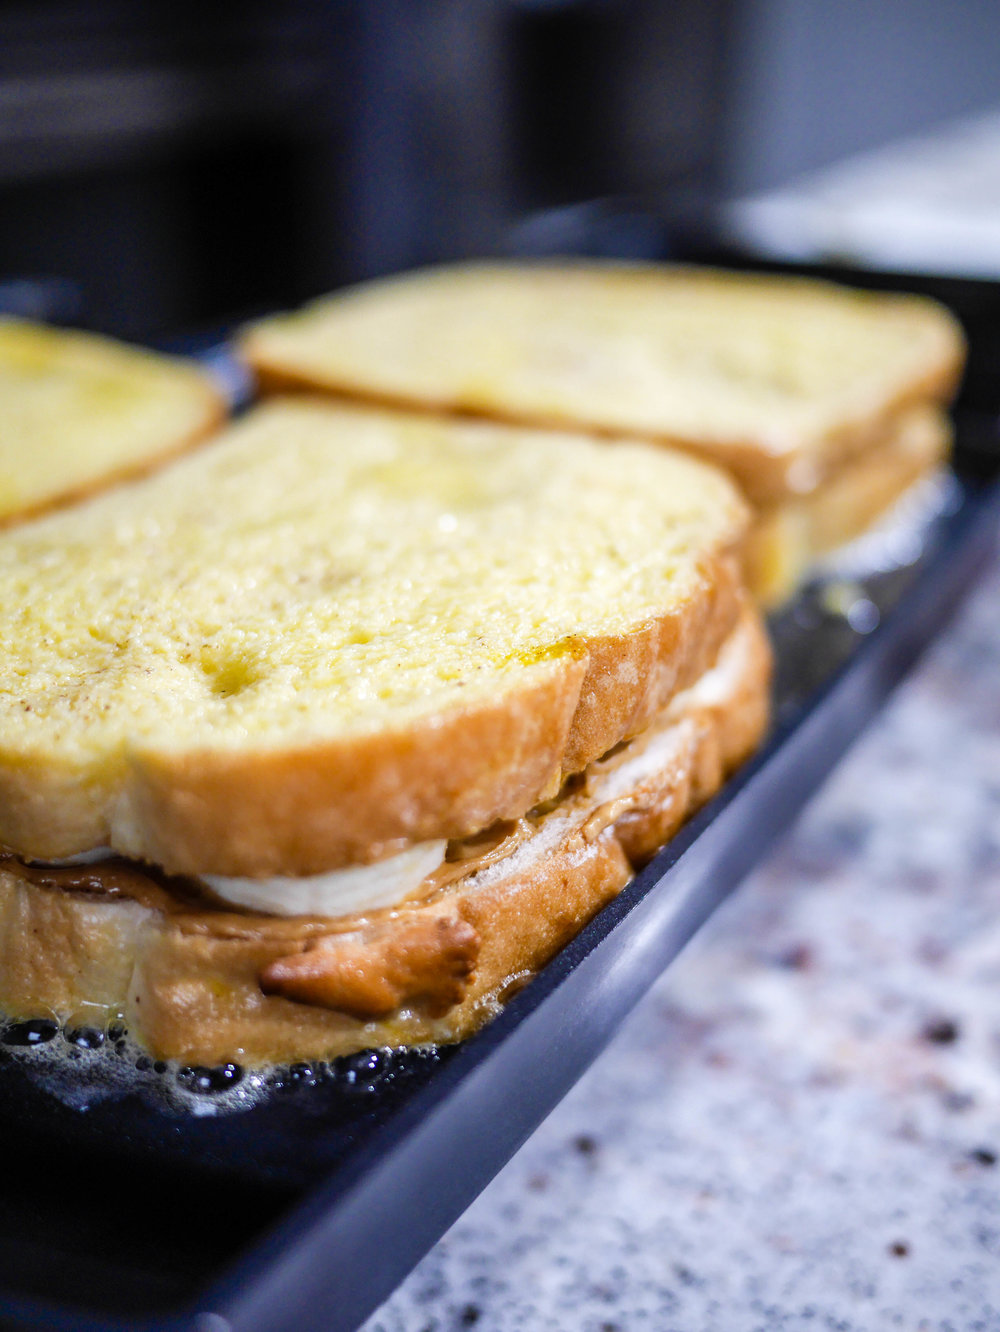 Preheat your griddle to 325 degrees and melt a bit of butter on top to keep toast from sticking.